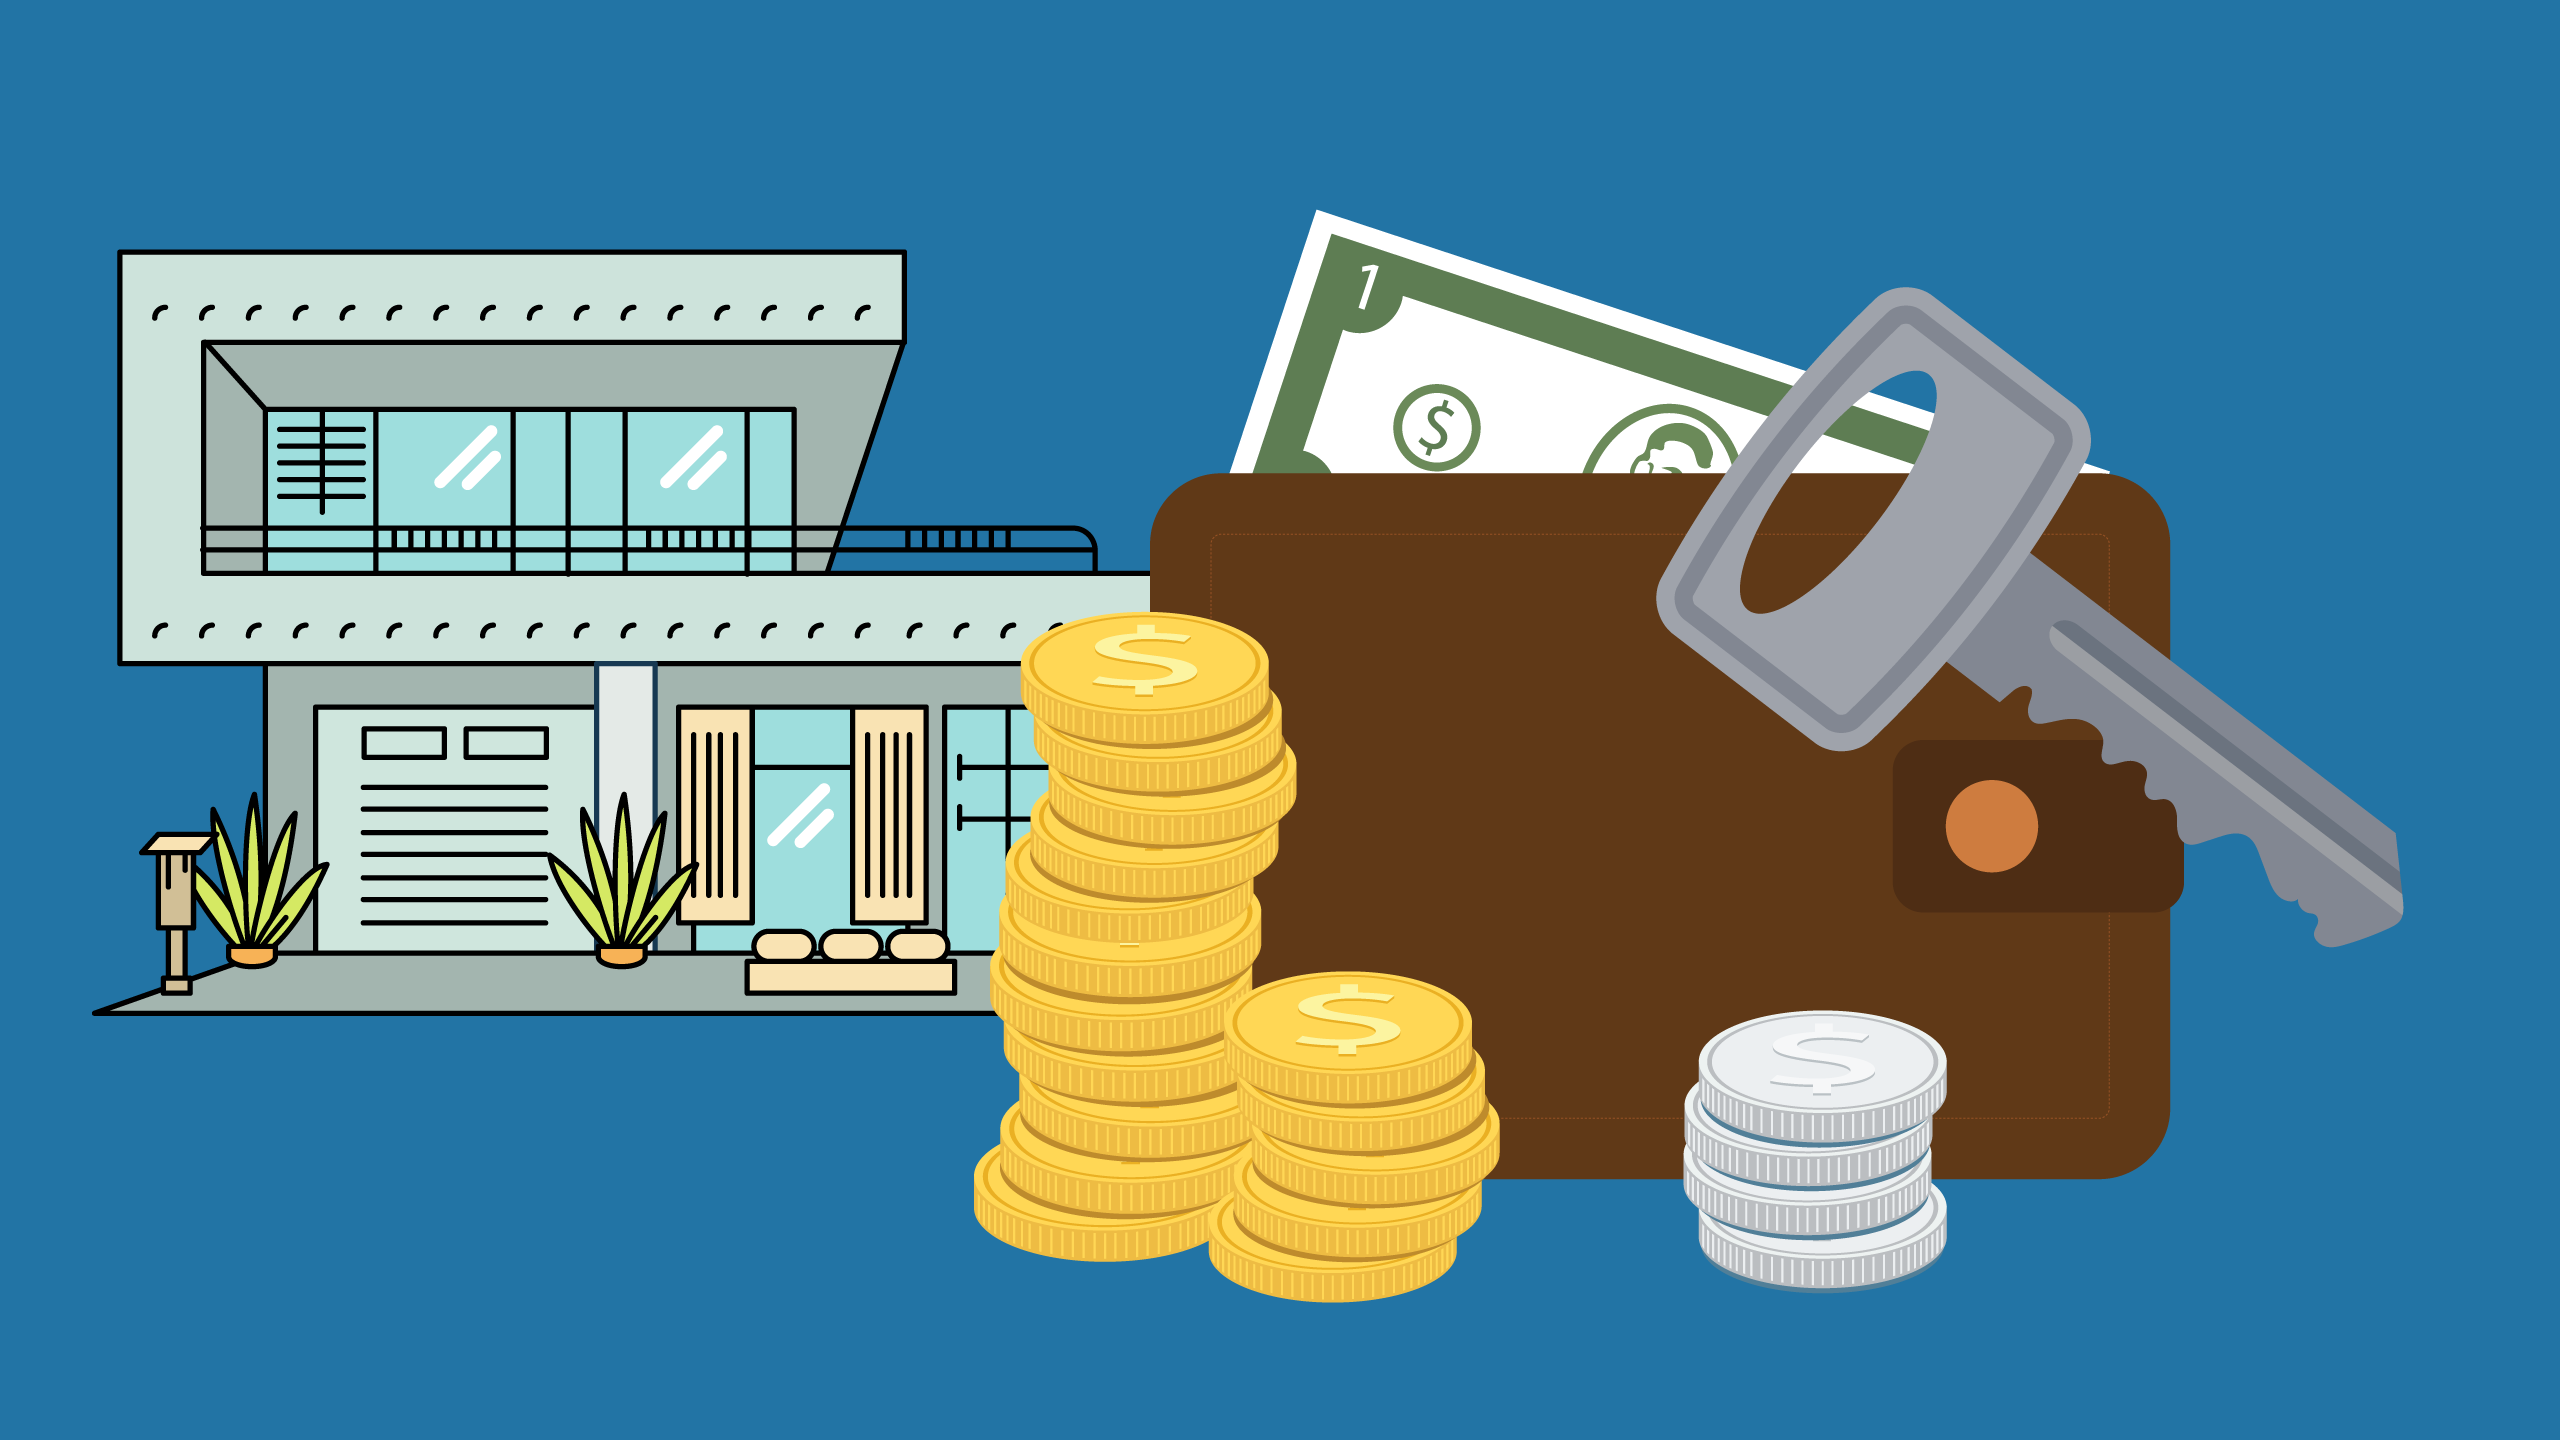 Clipart of modern home, wallet, coins, and home key